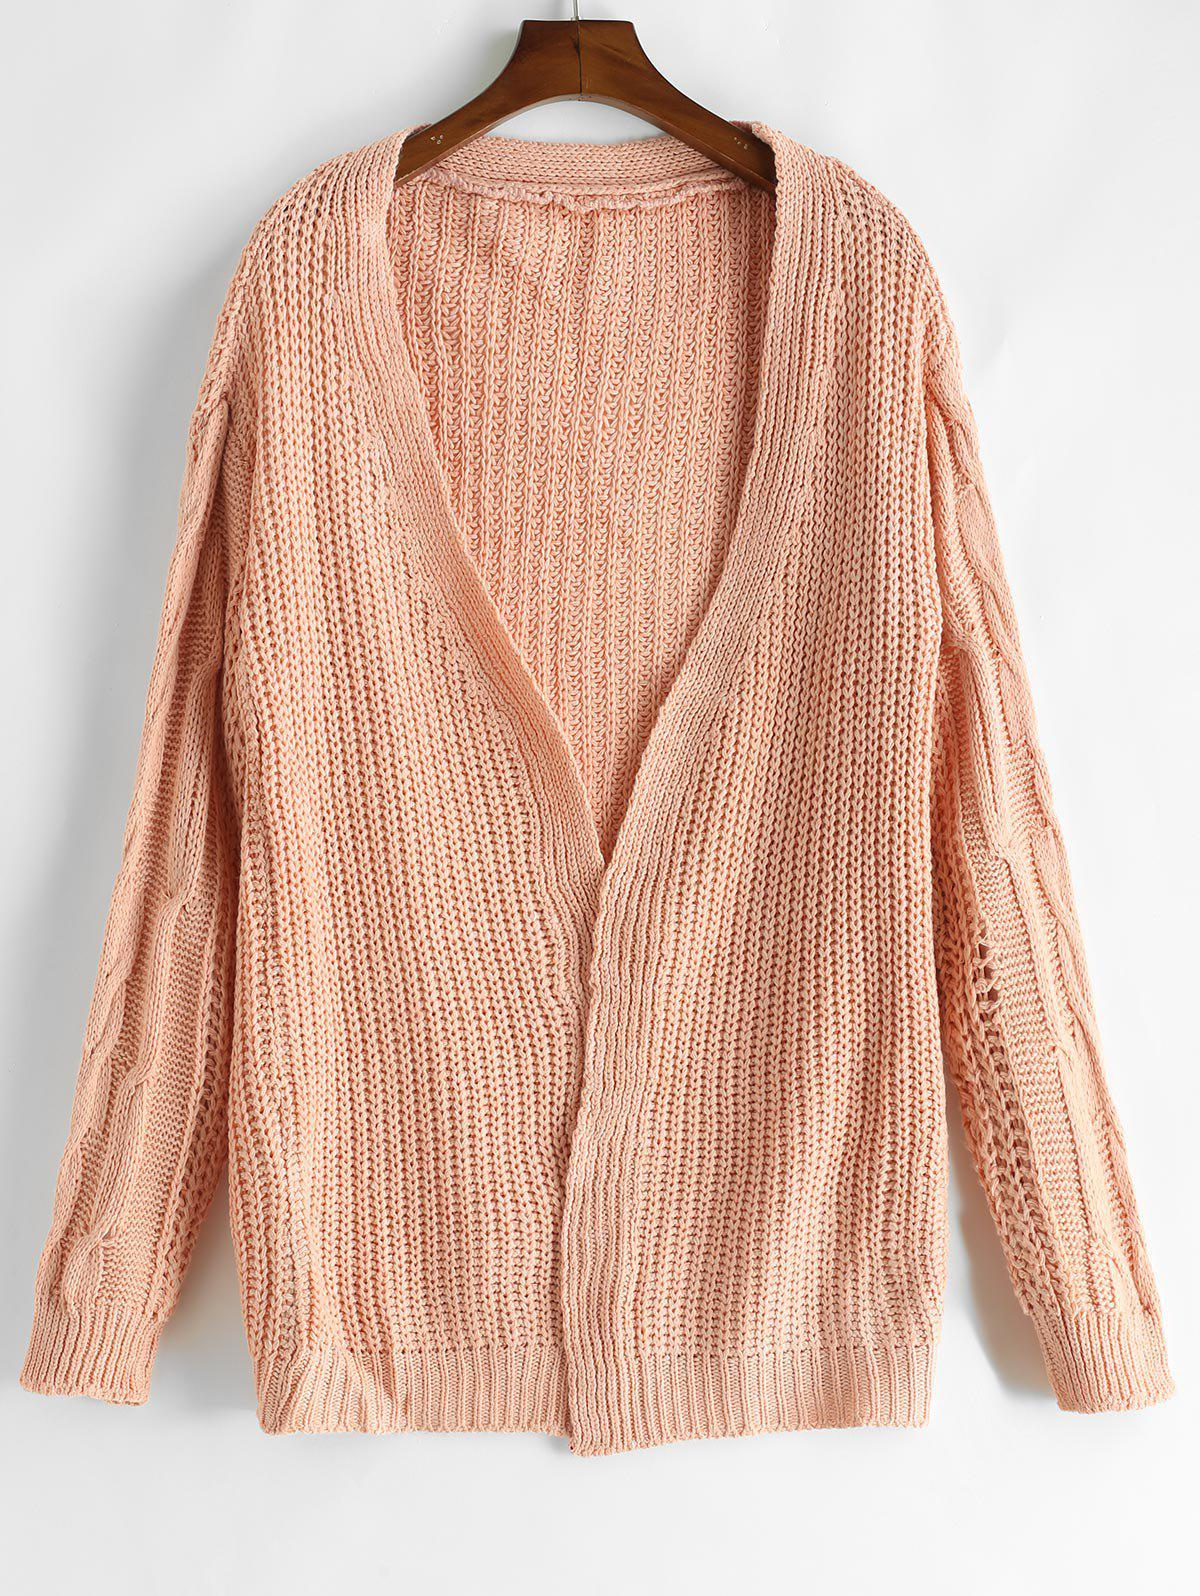 Loose Fitting Solid Color Crochet Cardigan